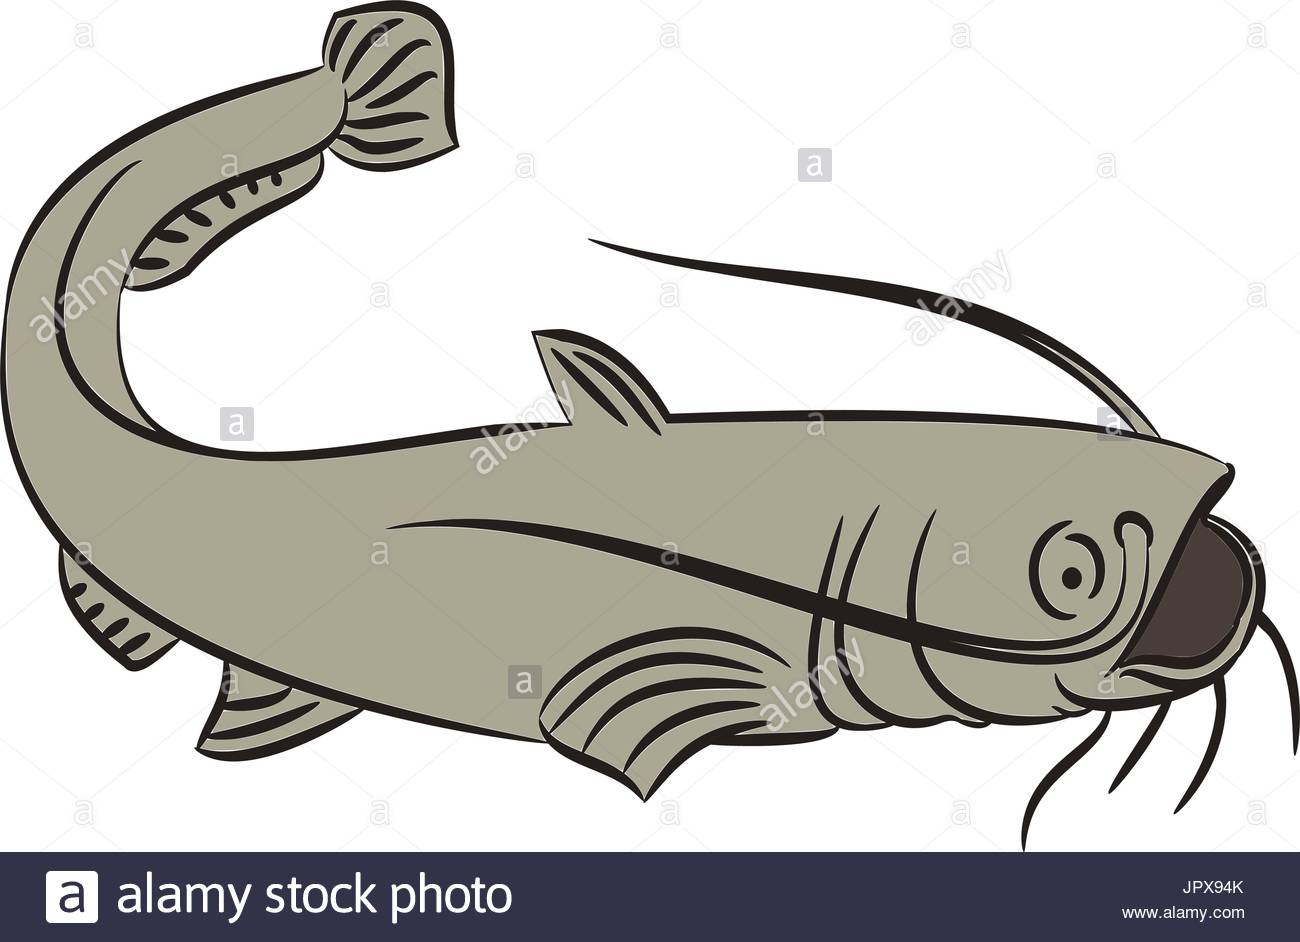 Line Art Of Fish : Cat fish drawing at getdrawings.com free for personal use